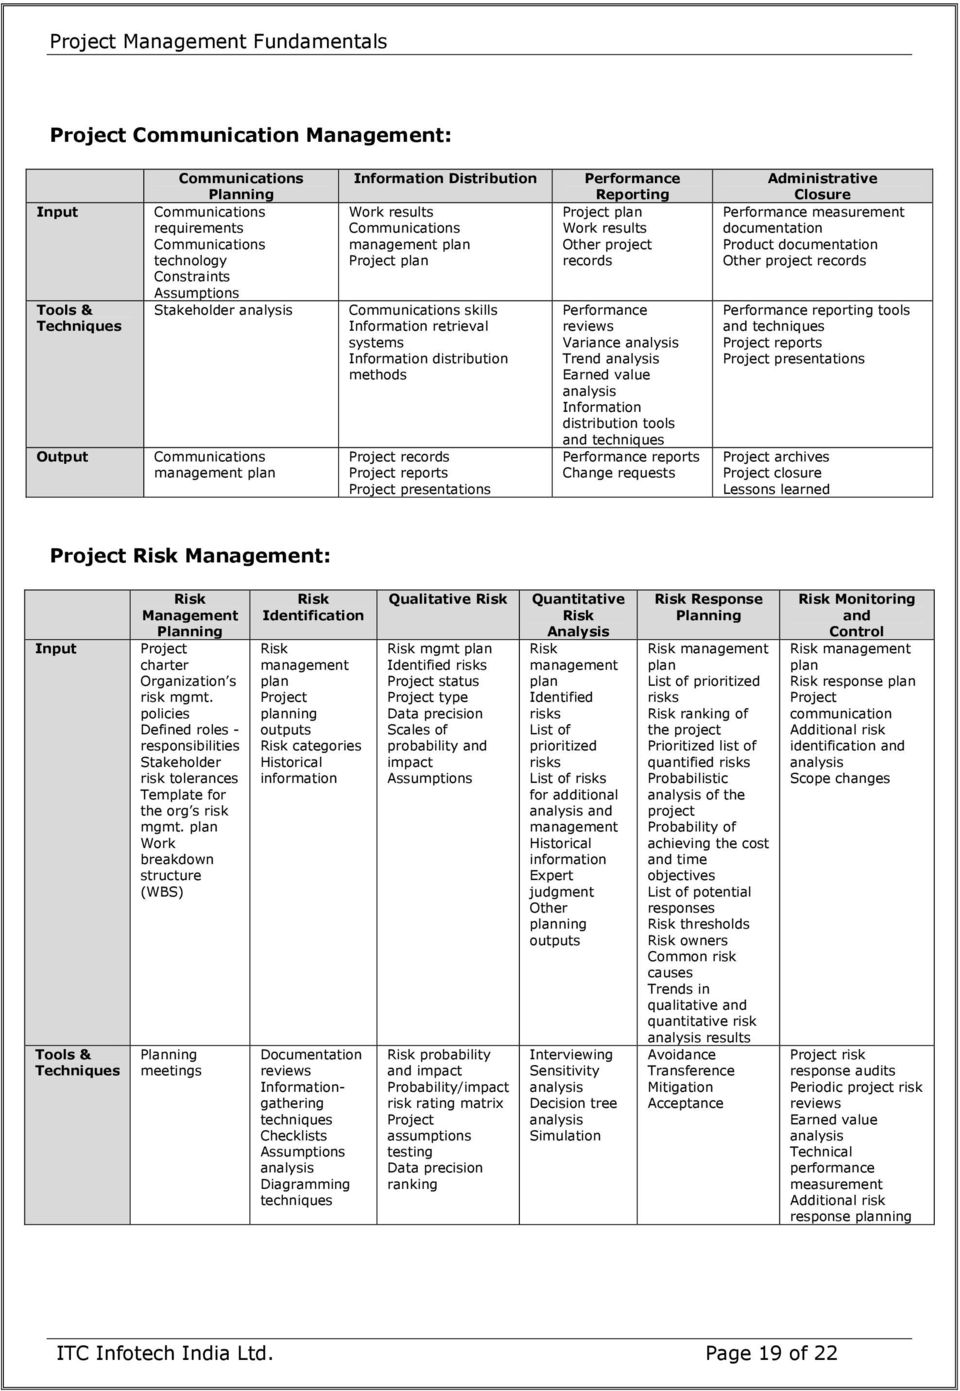 Project reports Project presentations Performance Reporting Project plan Work results Other project records Performance reviews Variance analysis Trend analysis Earned value analysis Information